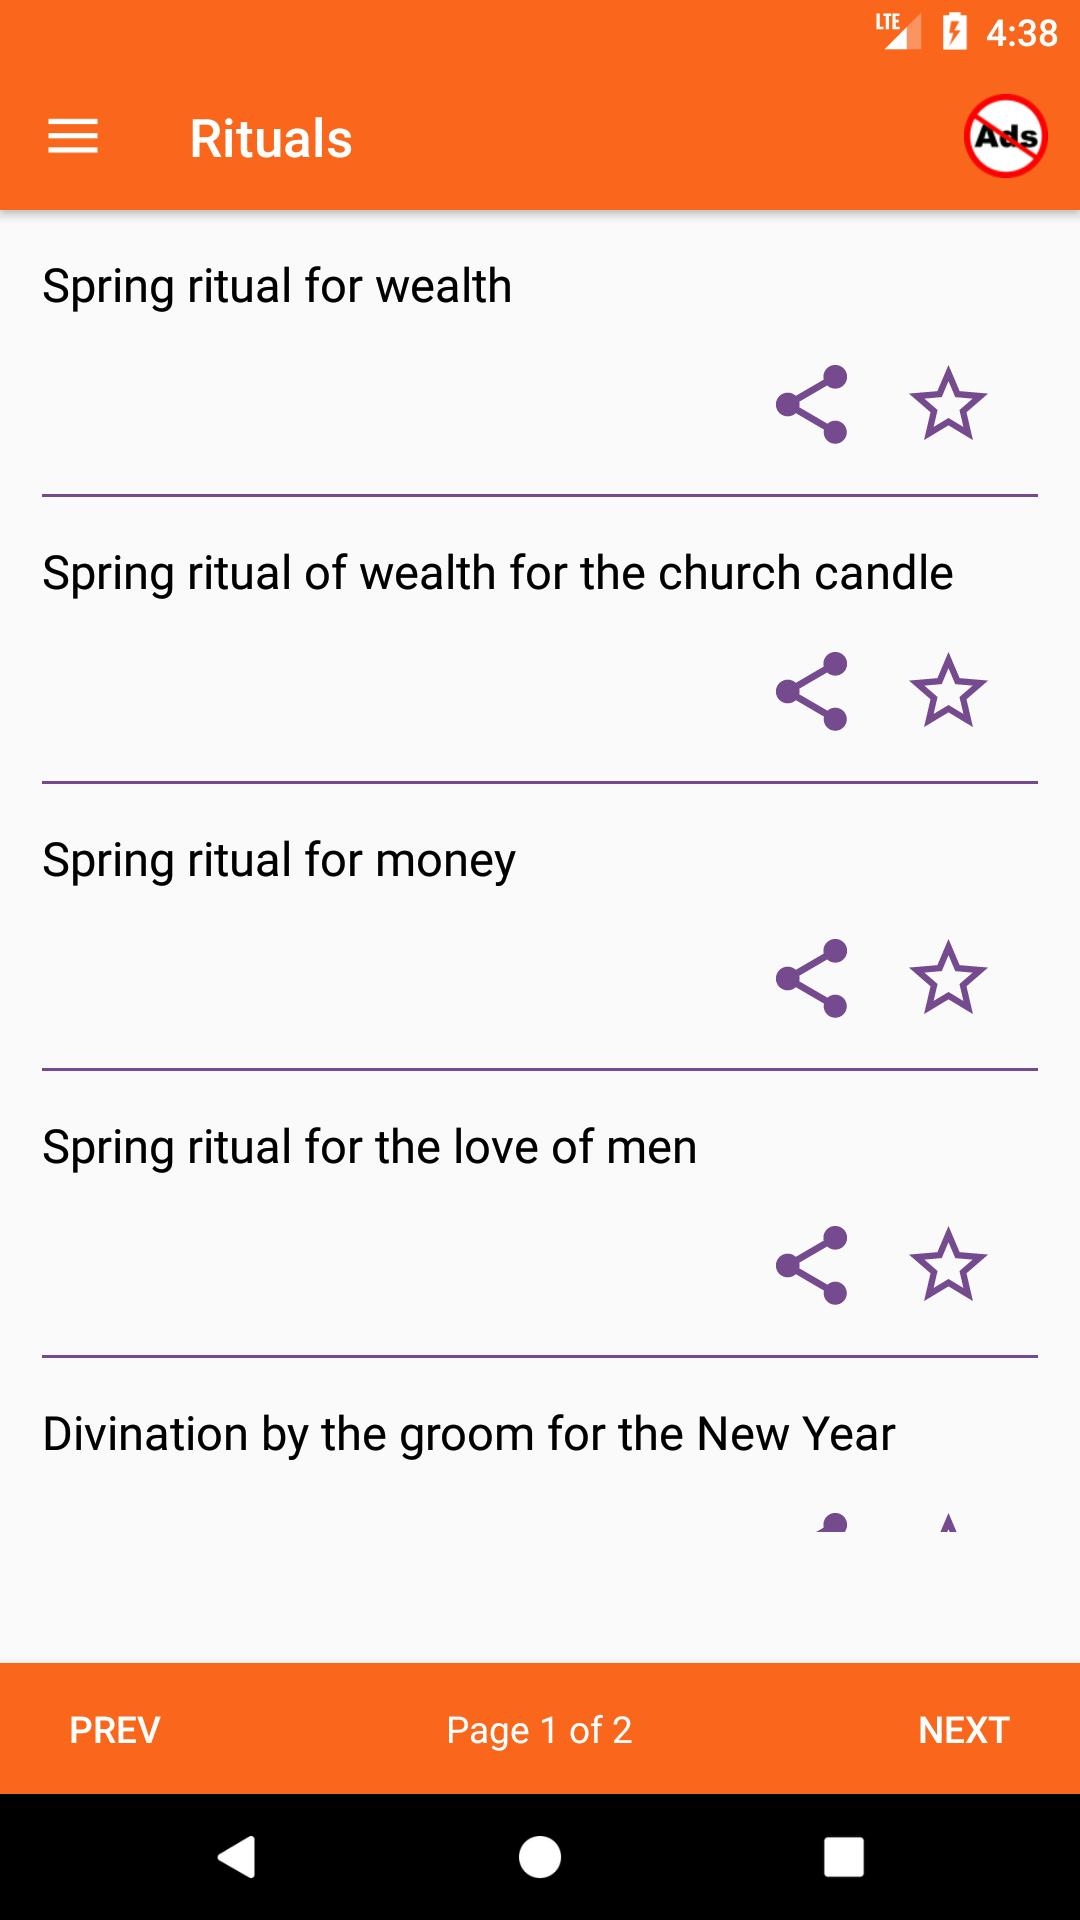 The magic book: rituals, spells and charms for Android - APK Download